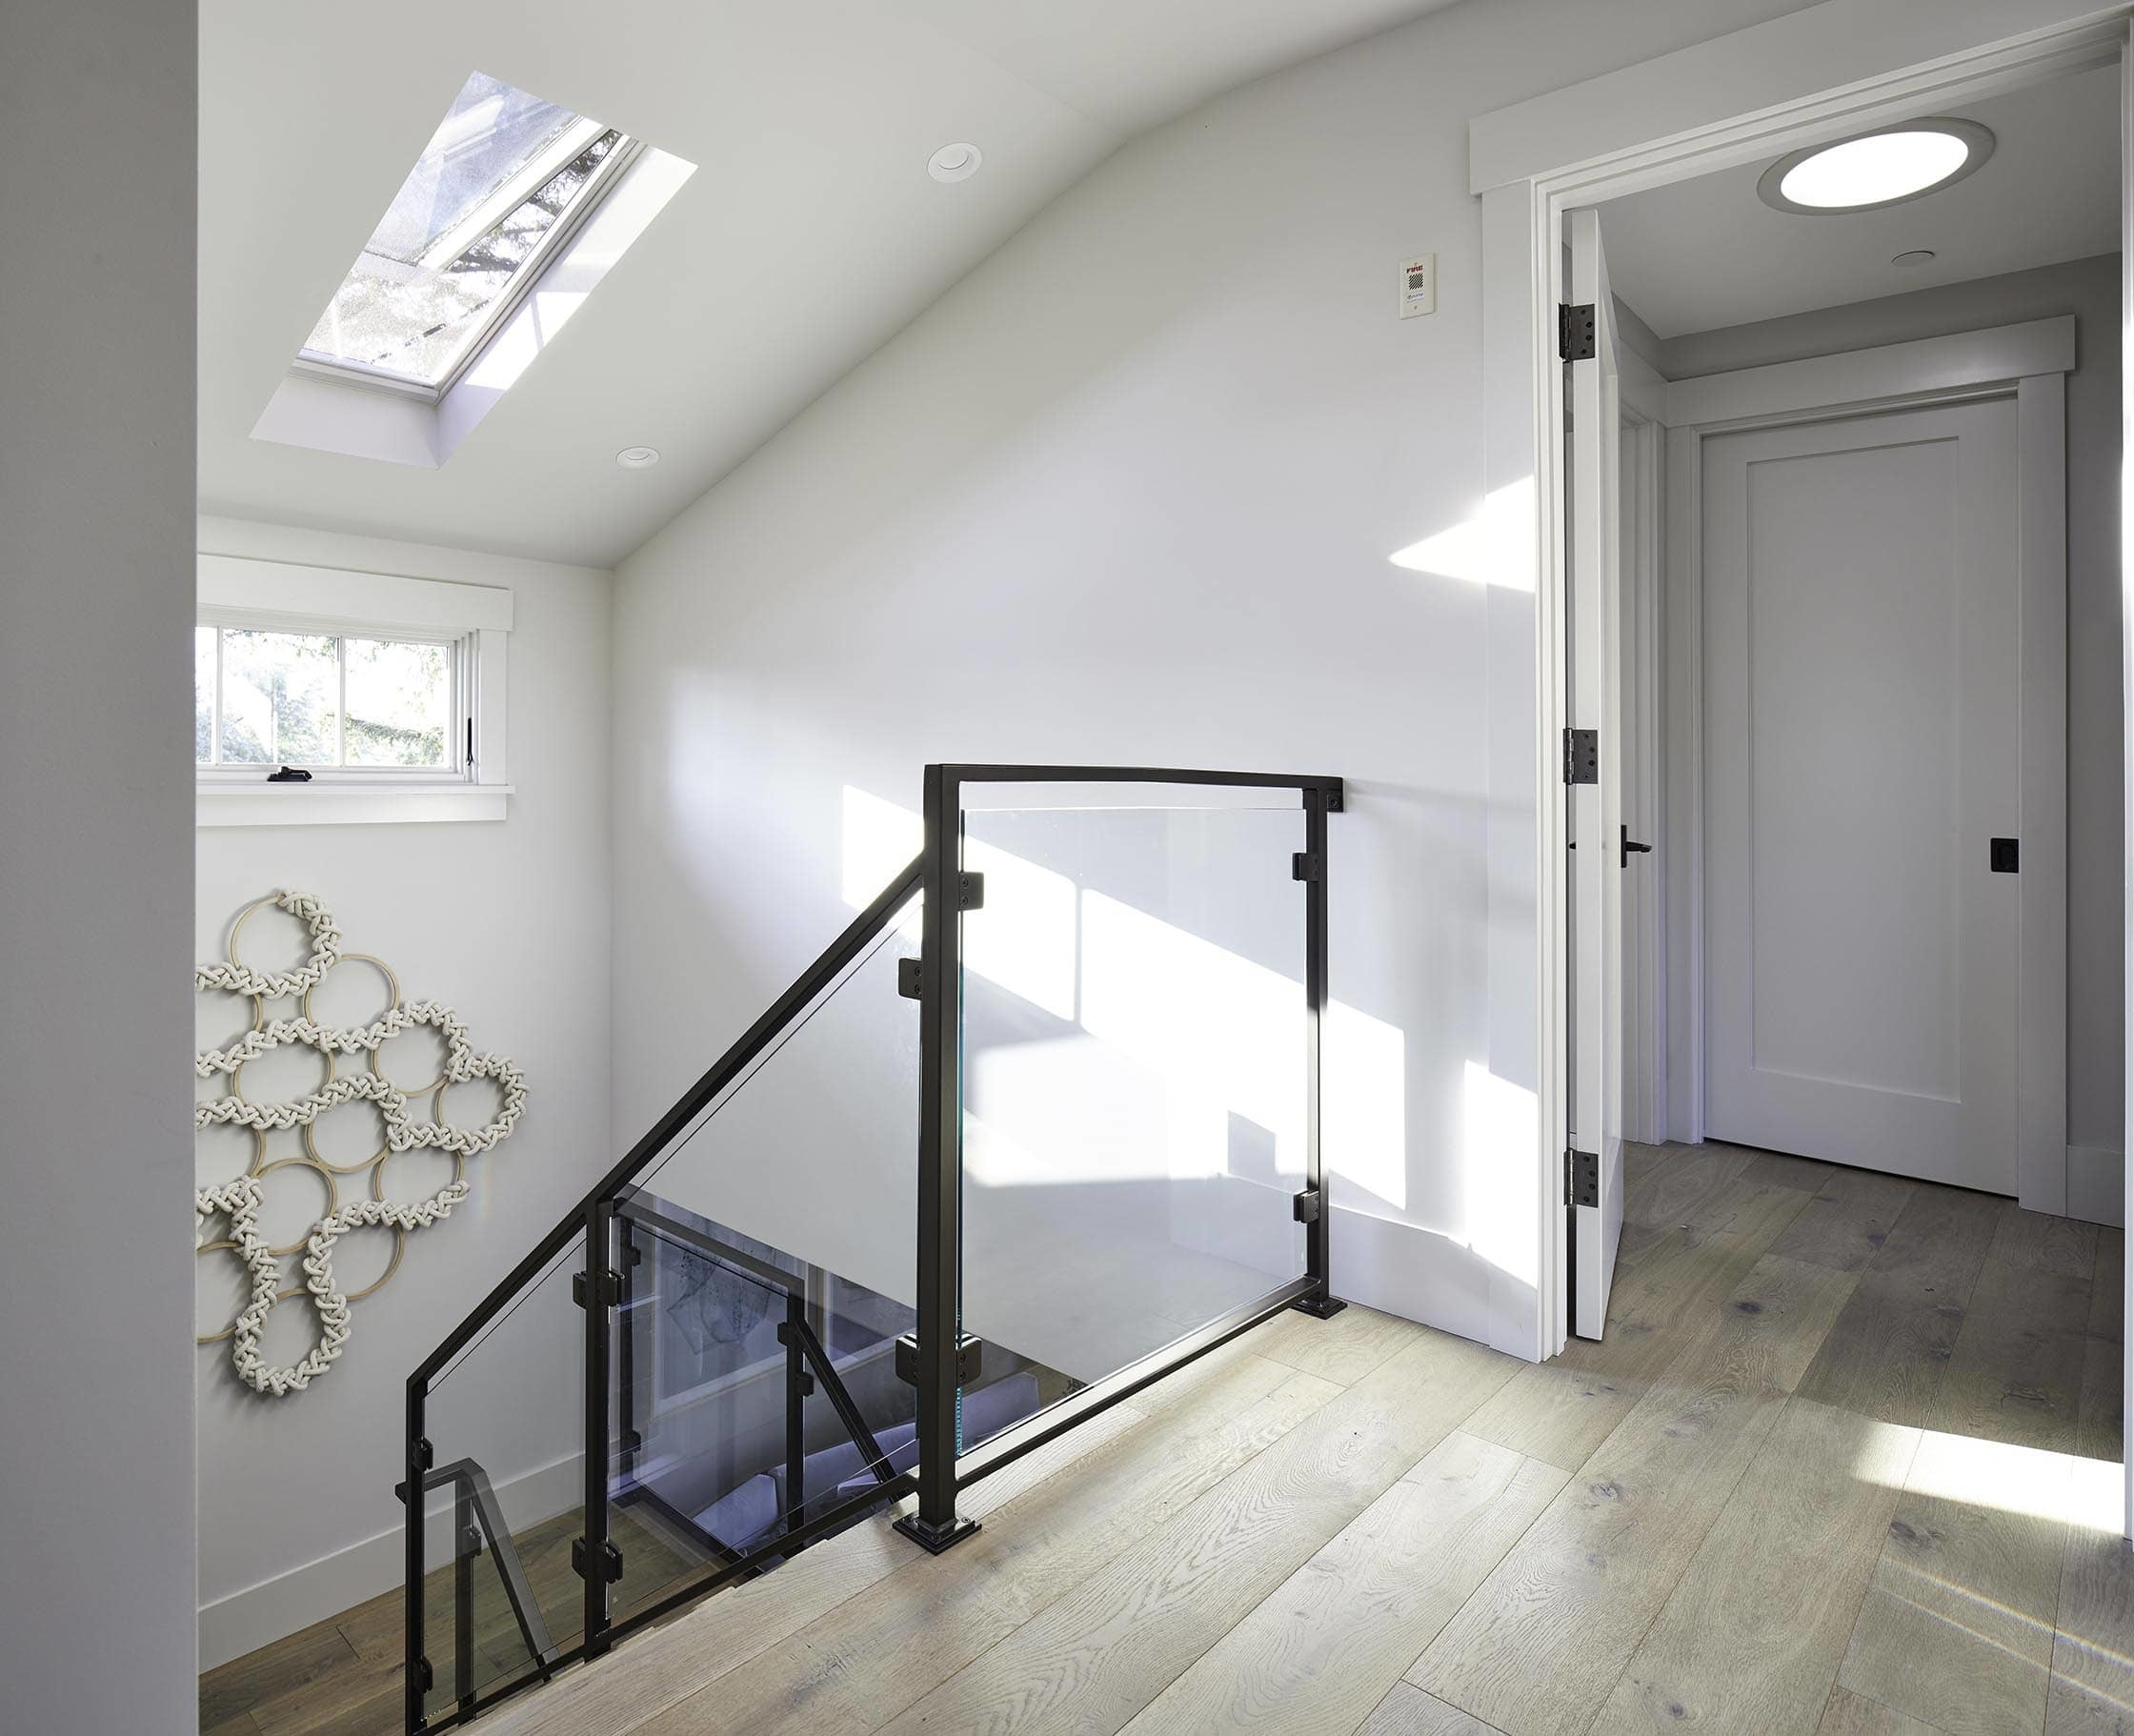 Sunlit stairwell with a skylight and knot art